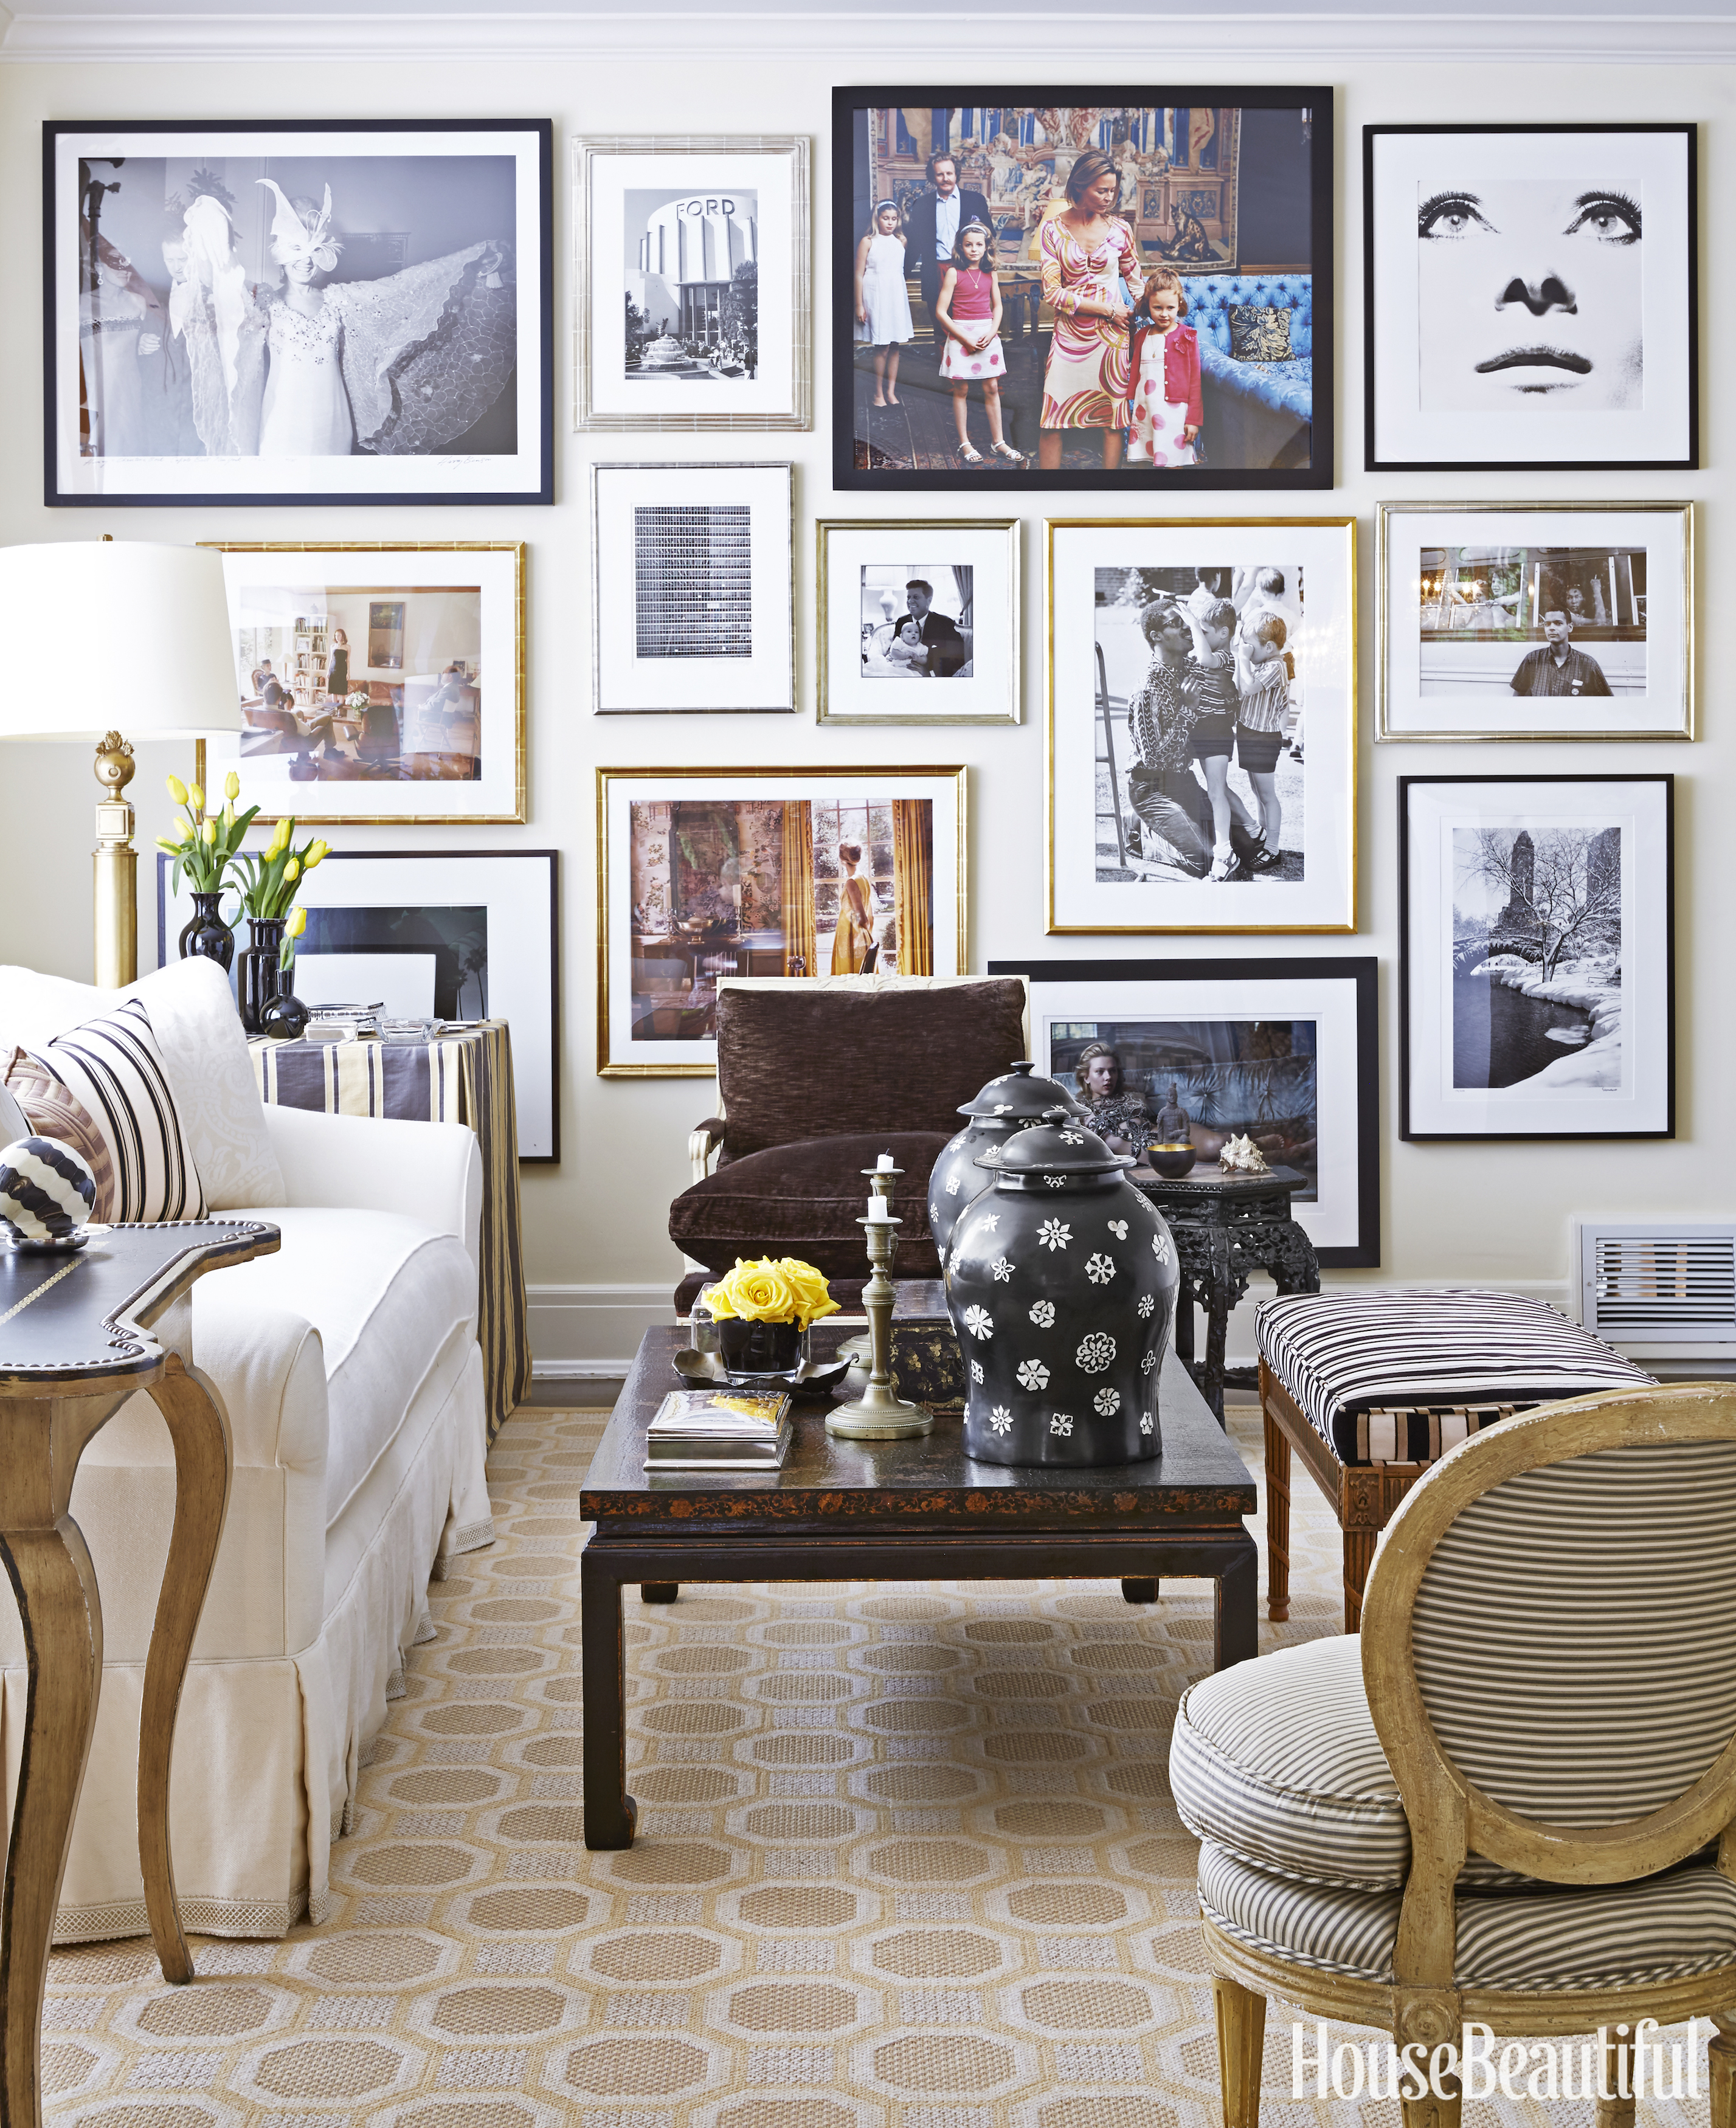 16 Enticing Wall Decorating Ideas For Your Living Room: Ways To Display Art